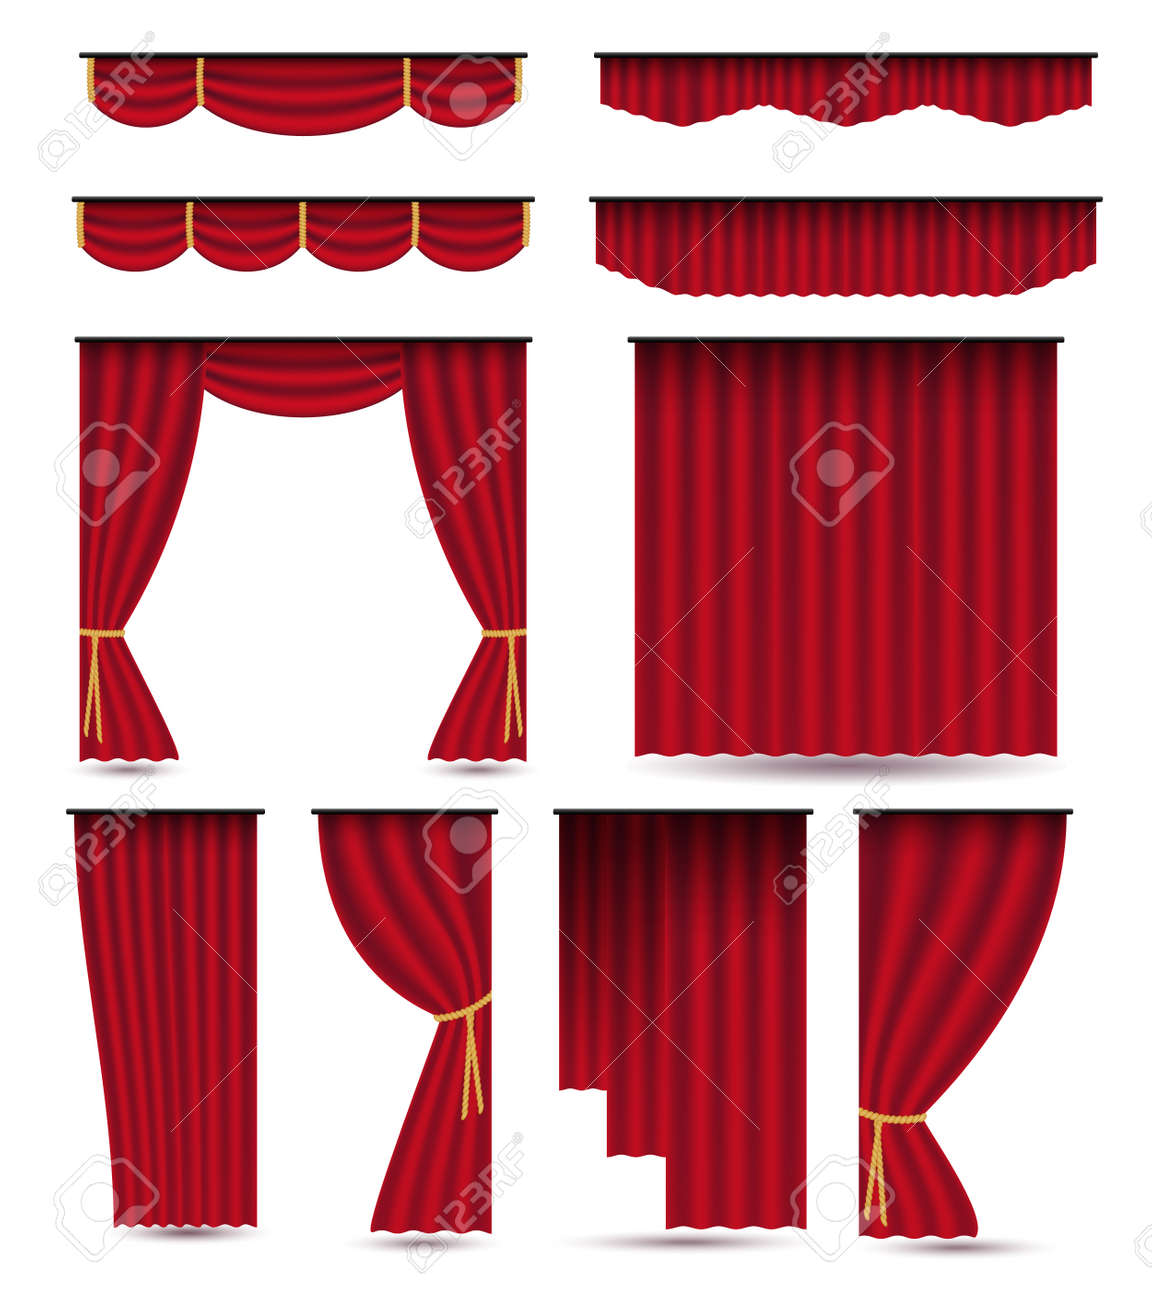 Set of red luxury silk velvet curtains and draperies.Realistic interior decoration design. Illustration isolated on white background.Raster version.Clipart - 152749412